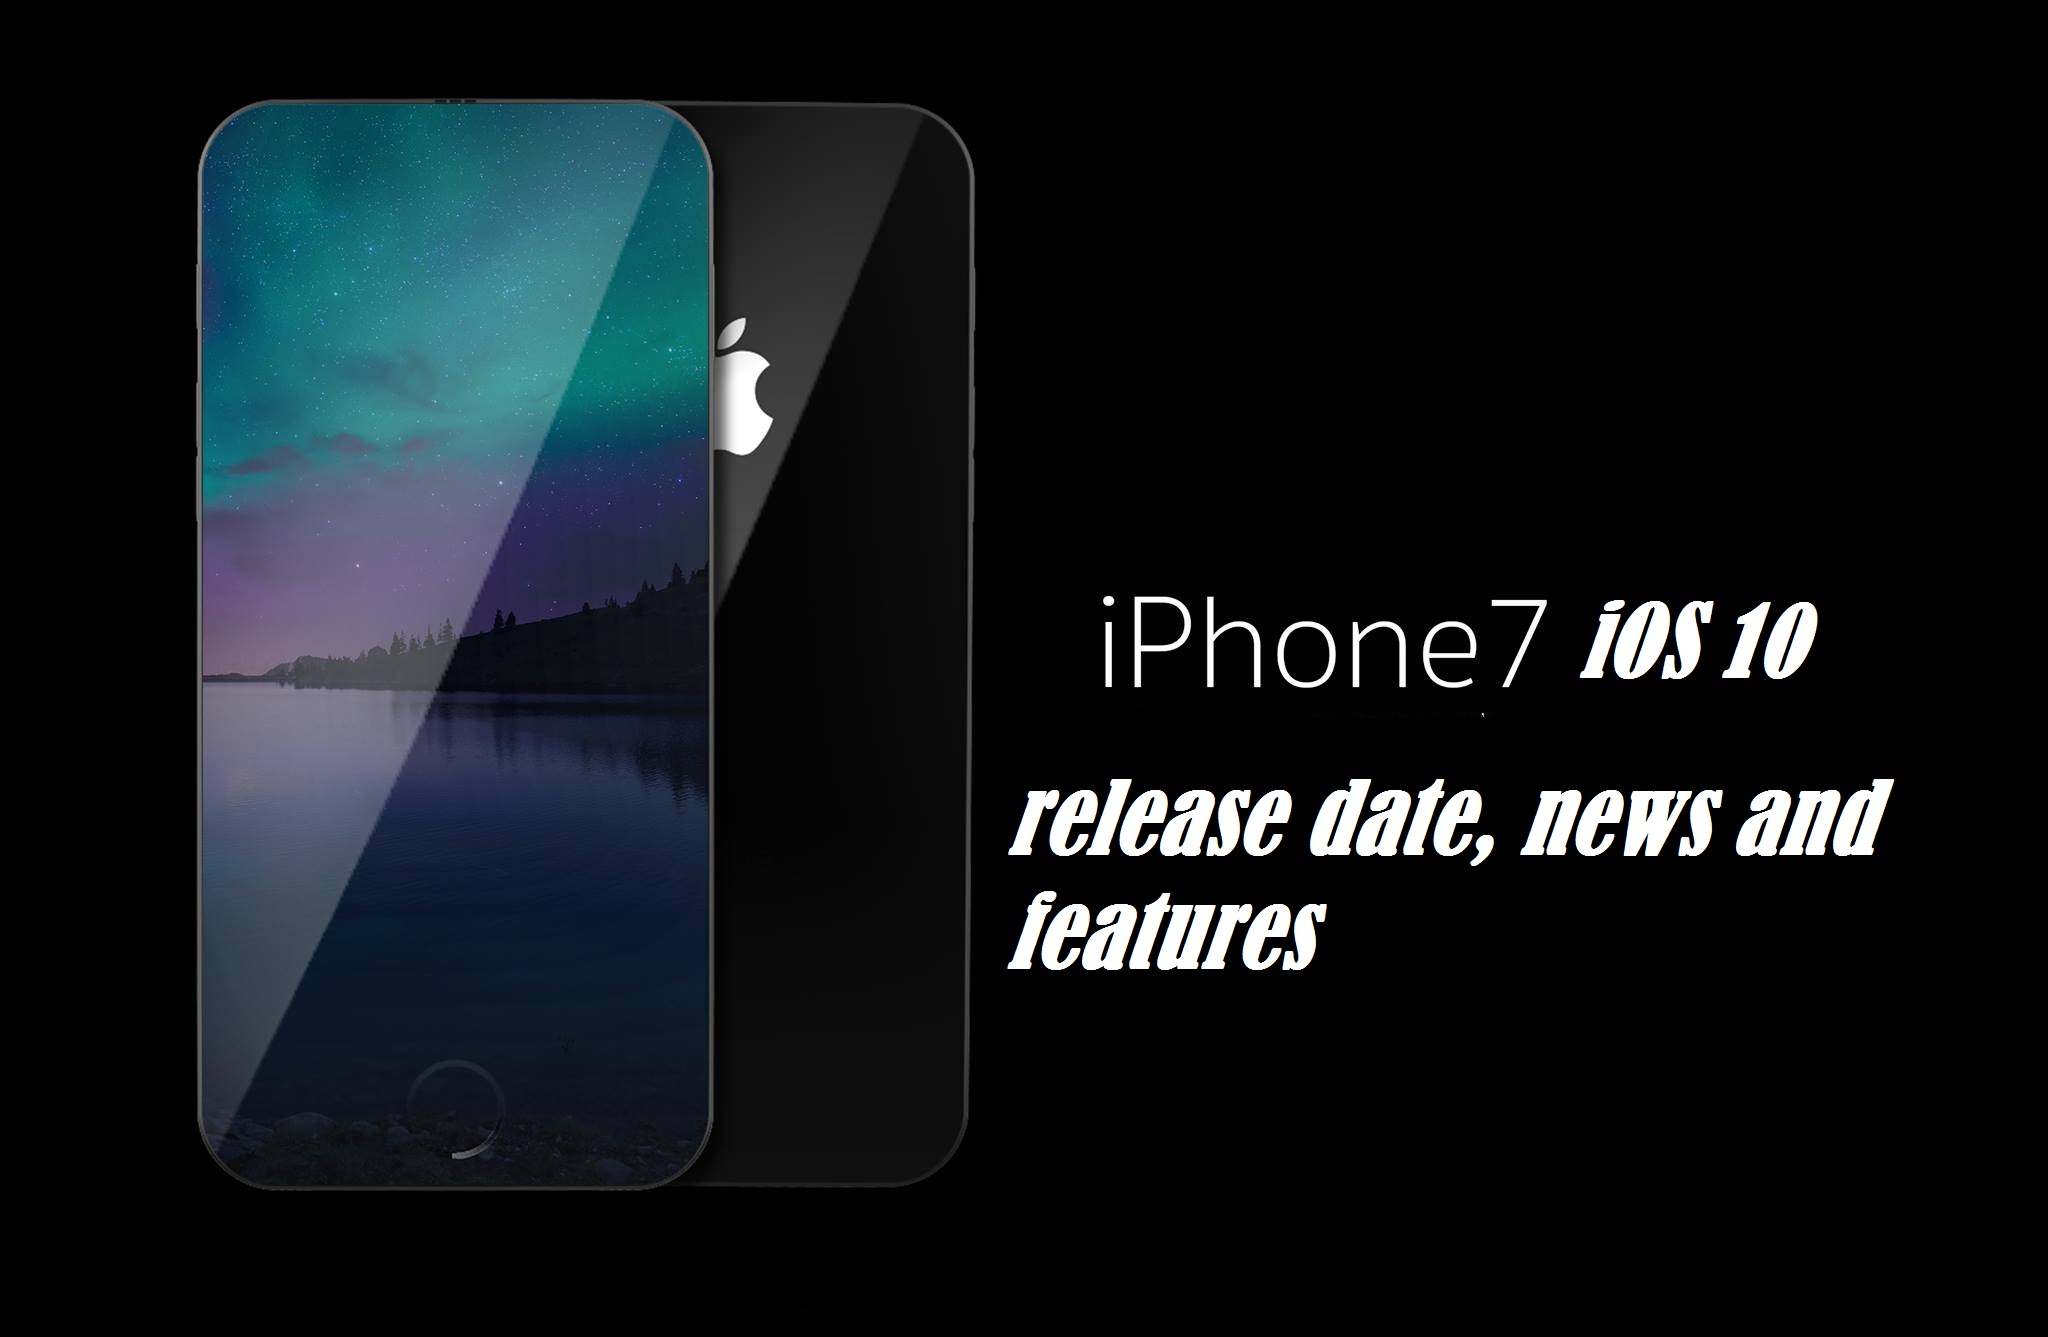 ios 10 release date news and features